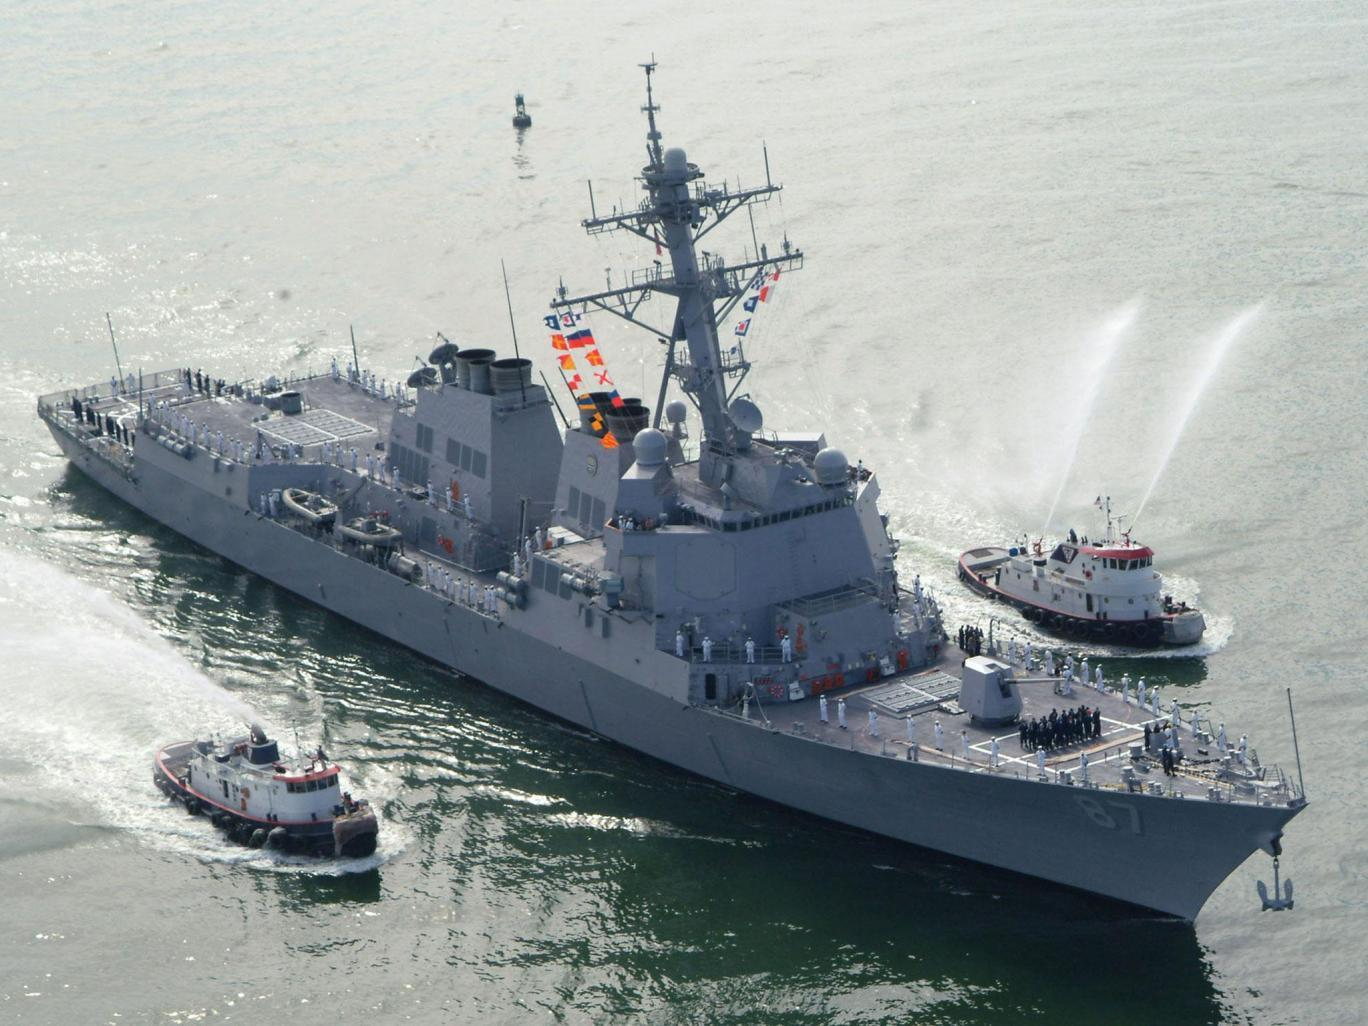 Yemen: America retaliates after Houthi rebels fire at navy warship